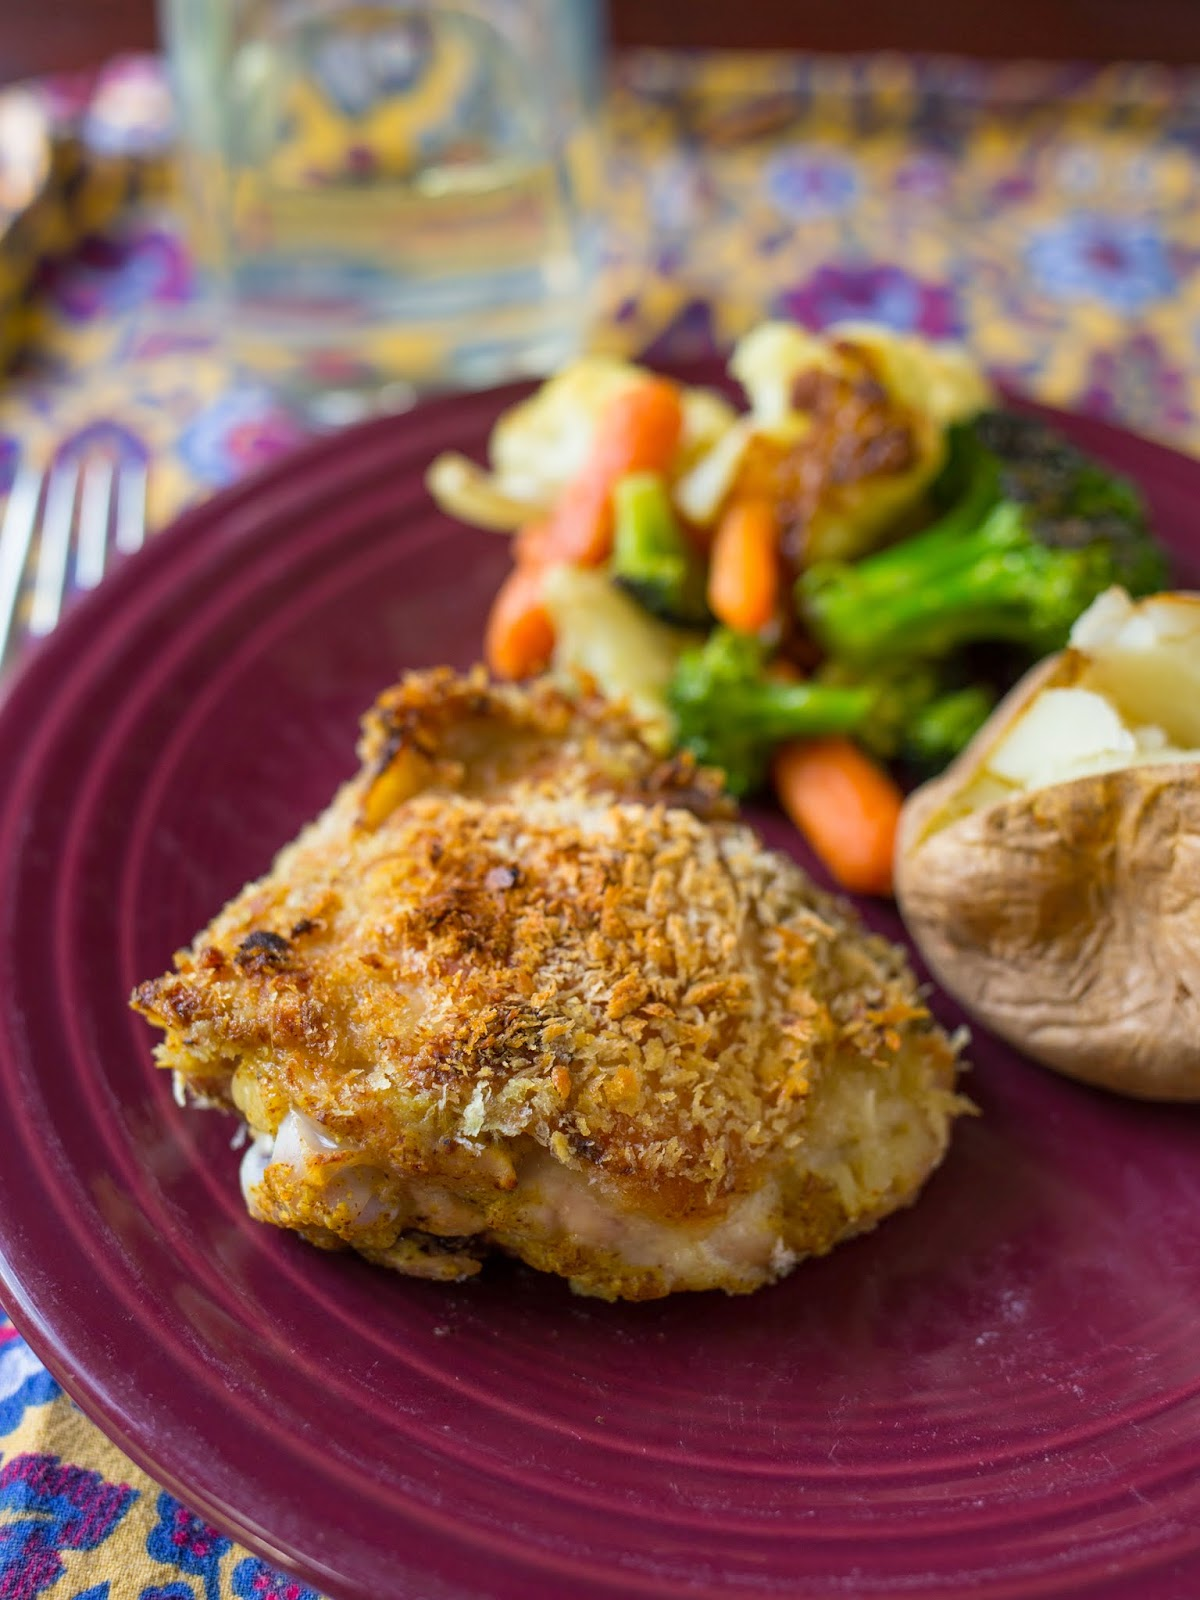 Baked Chicken Thighs with Mustard and Herbs